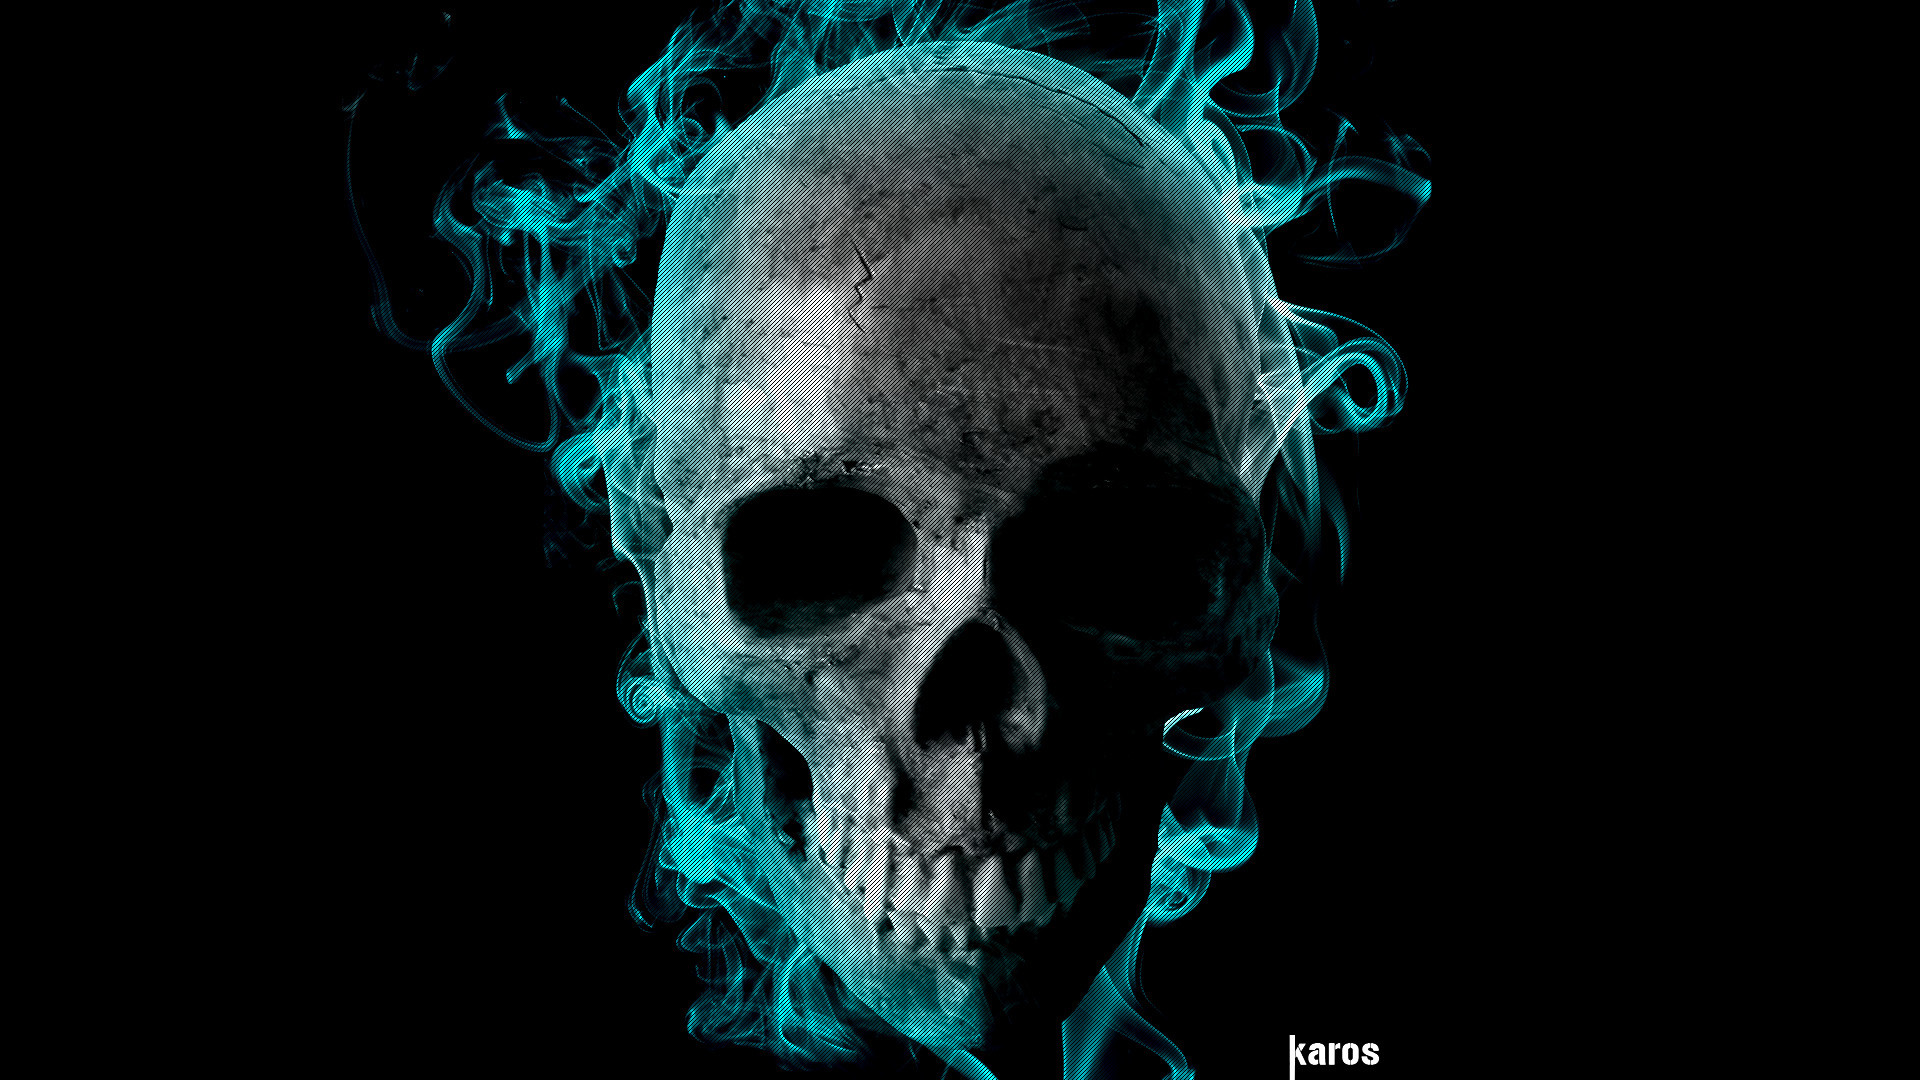 Flaming Skull Wallpapers (50+ images)